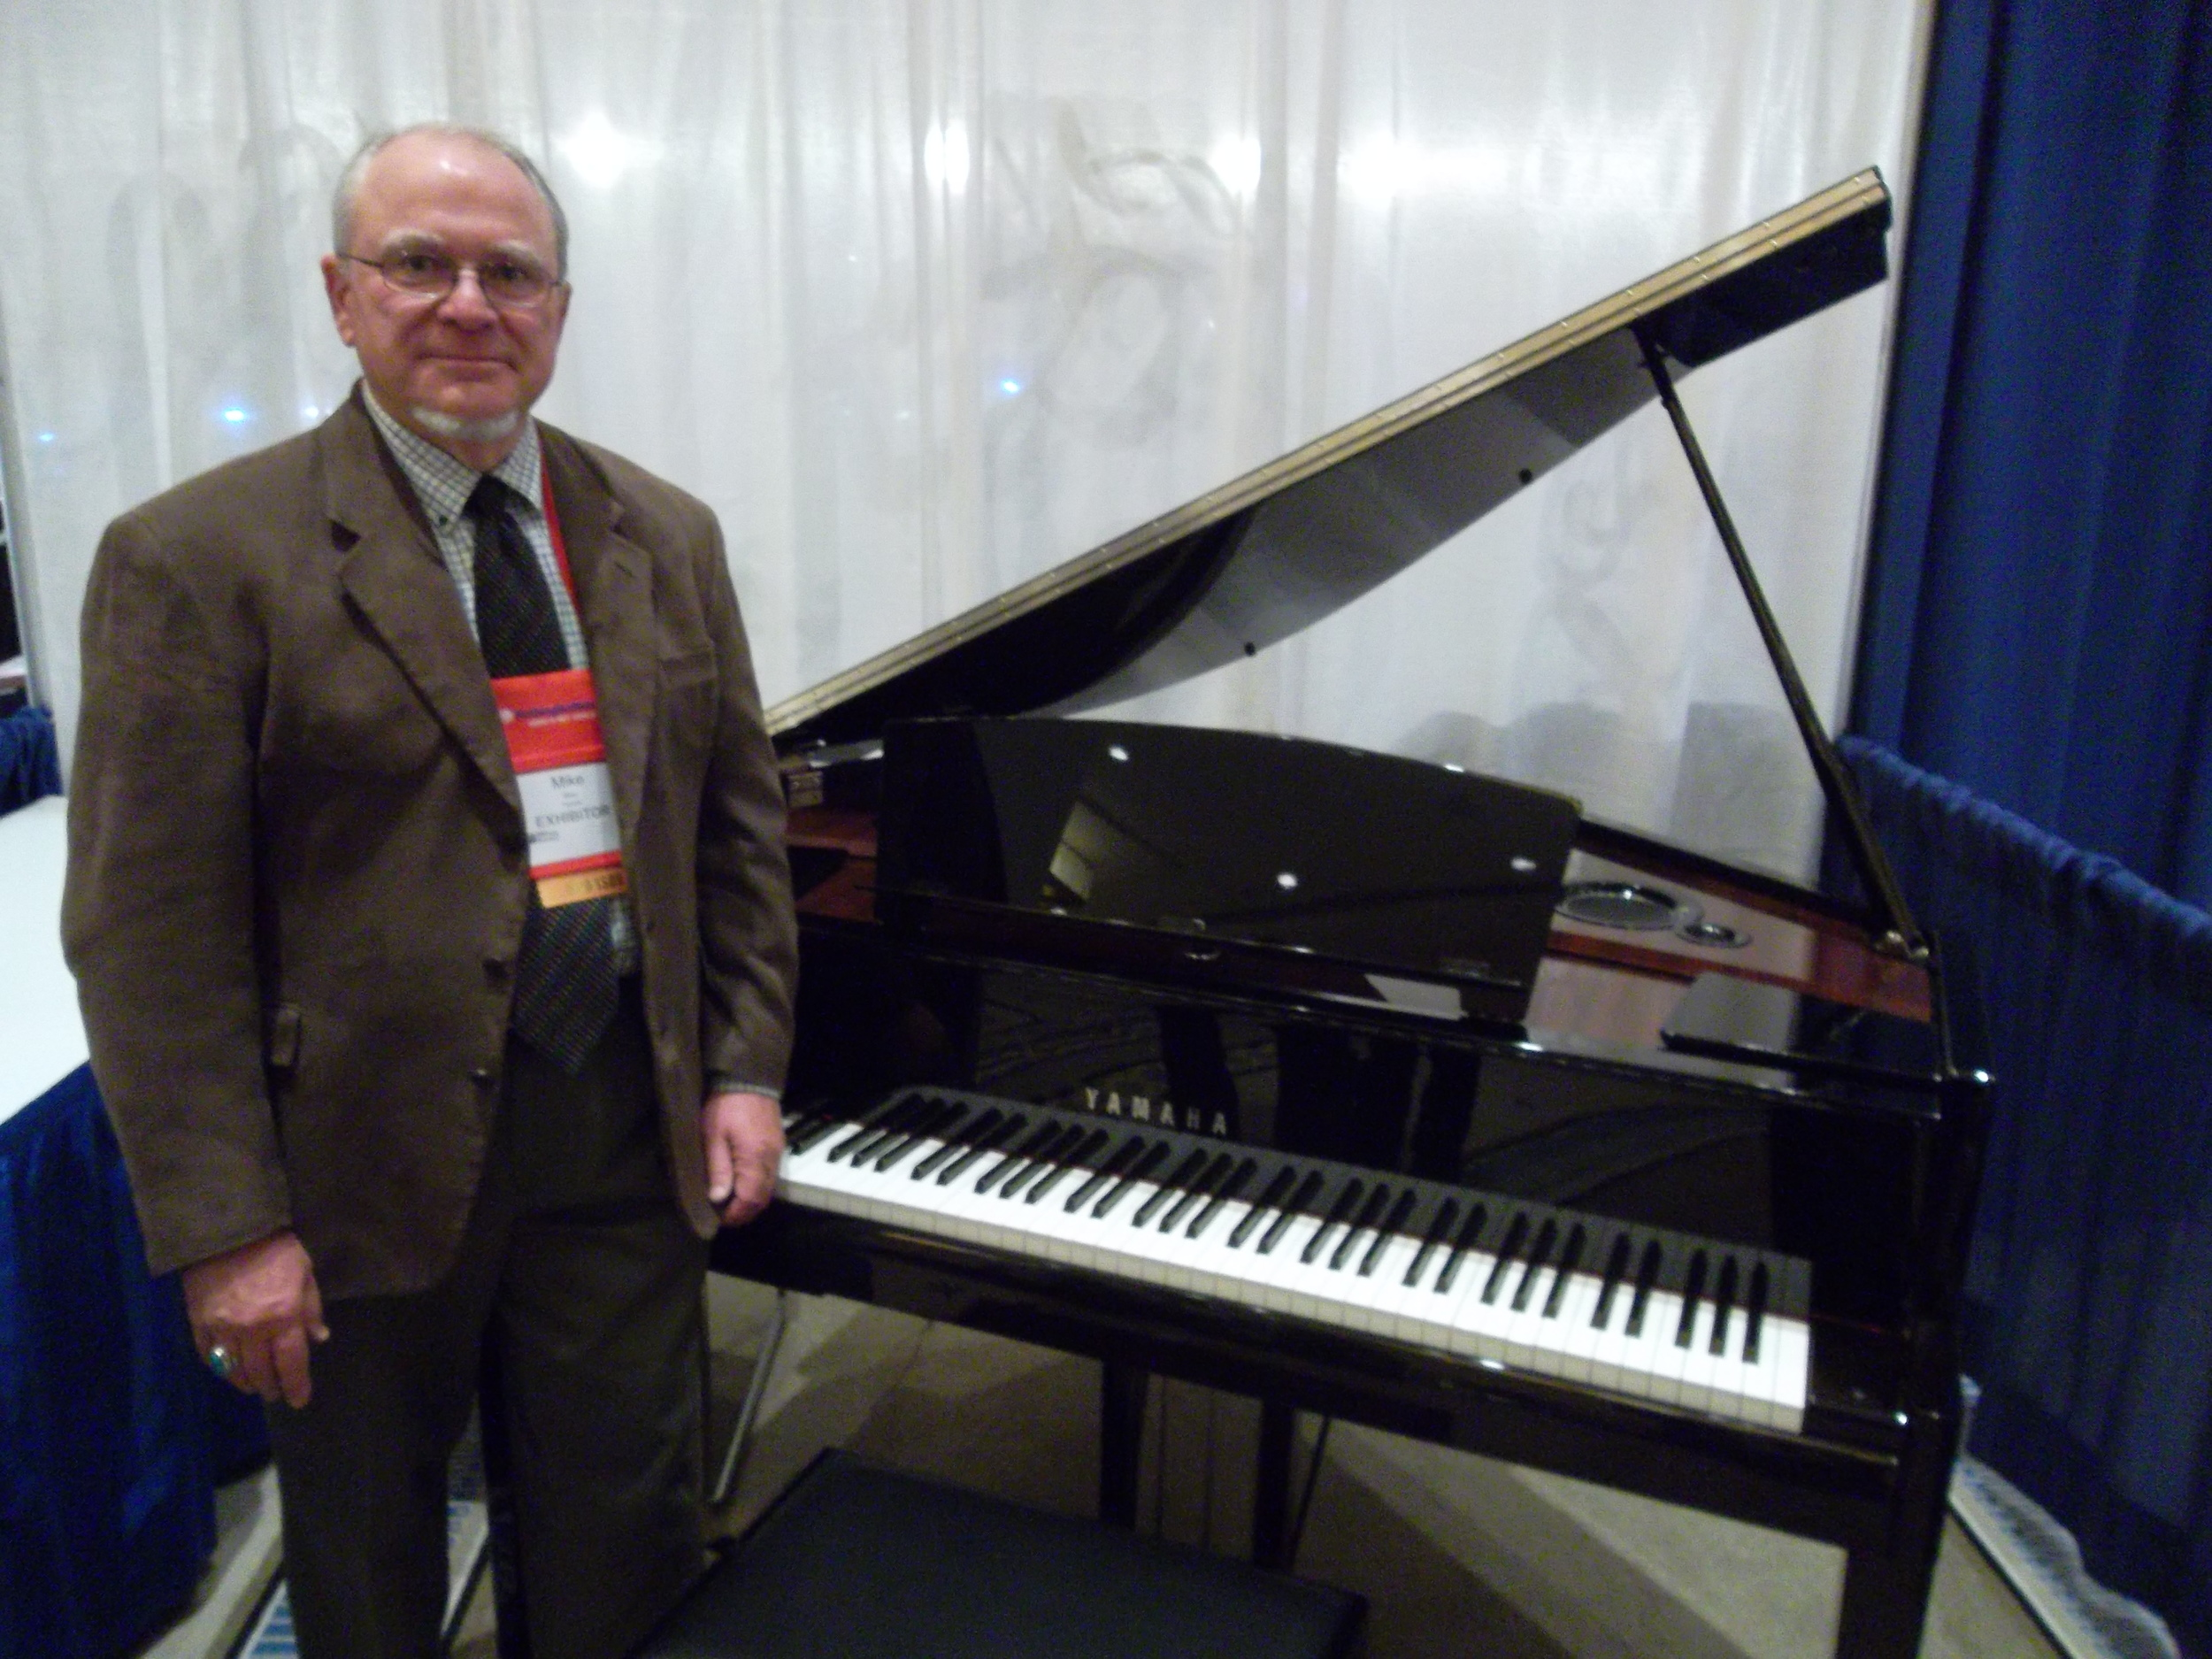 Click photo to download. Caption: Mike Bates came to the Union for Reform Judaism to make synagogues aware of the AvantGrand piano. Credit: Jacob Kamaras.